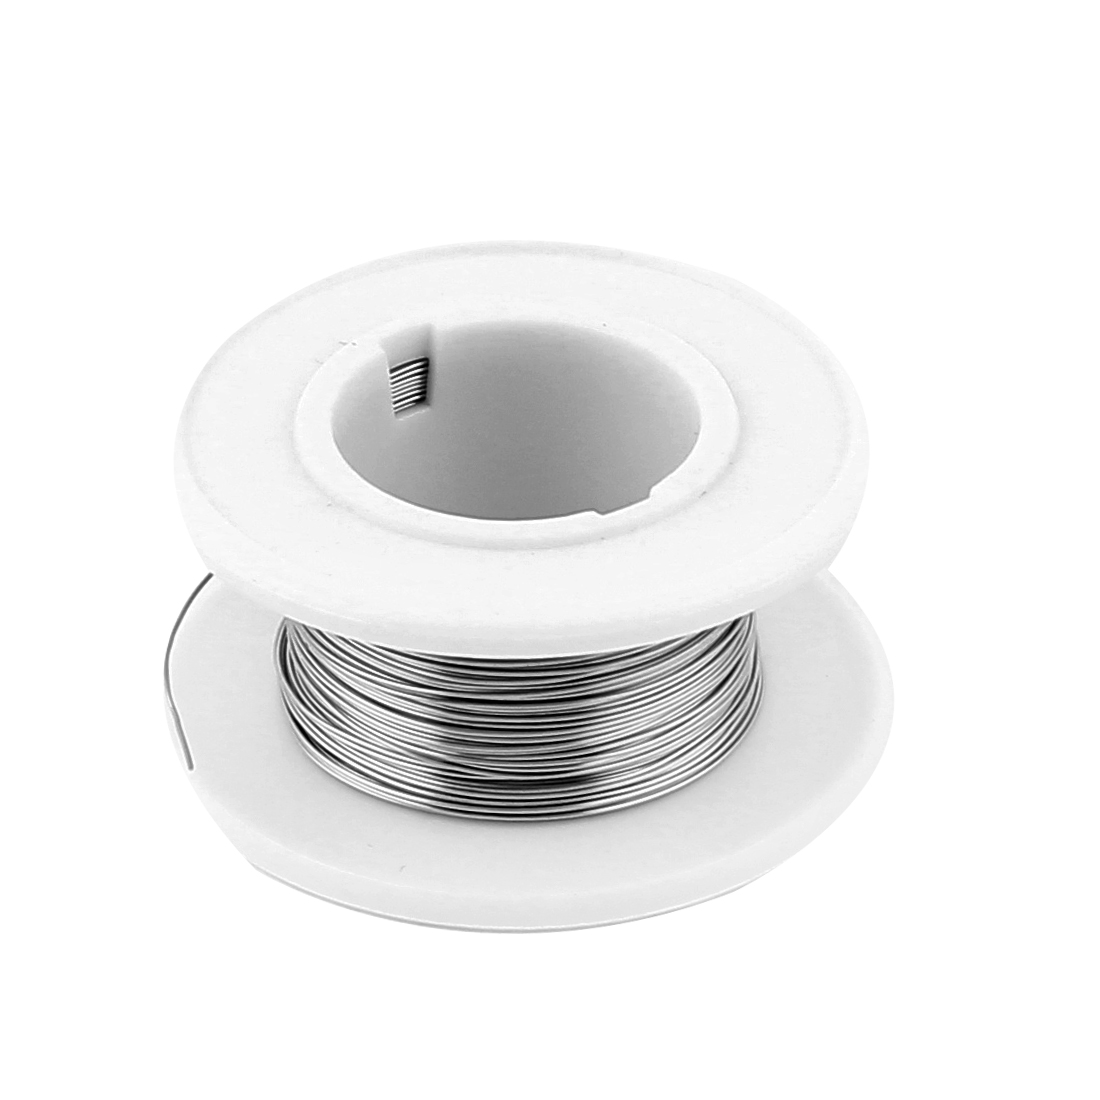 Nichrome 80 Round Wire 0.3mm 29Gauge AWG 82.02ft Roll 15.42Ohm/m Heater